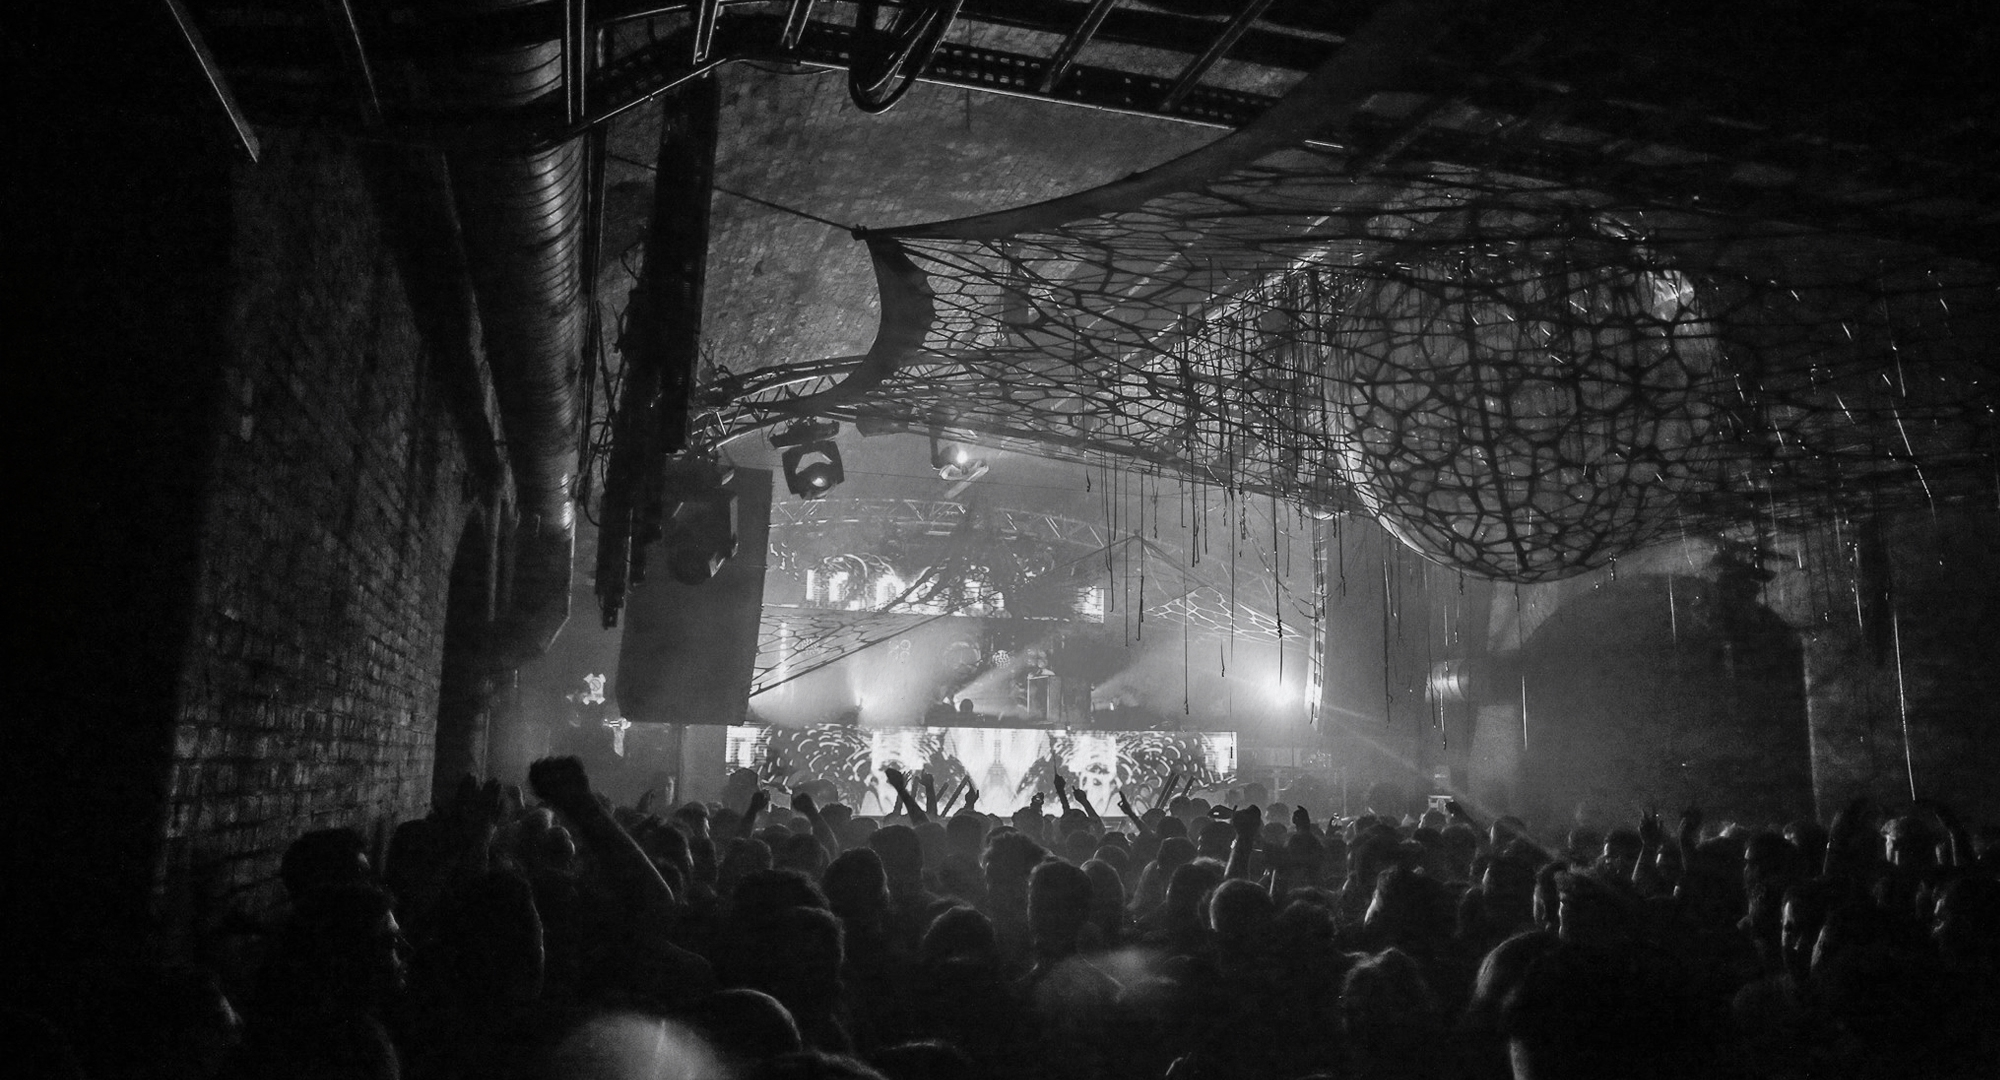 saturday 28th october ants u2013 the warehouse project